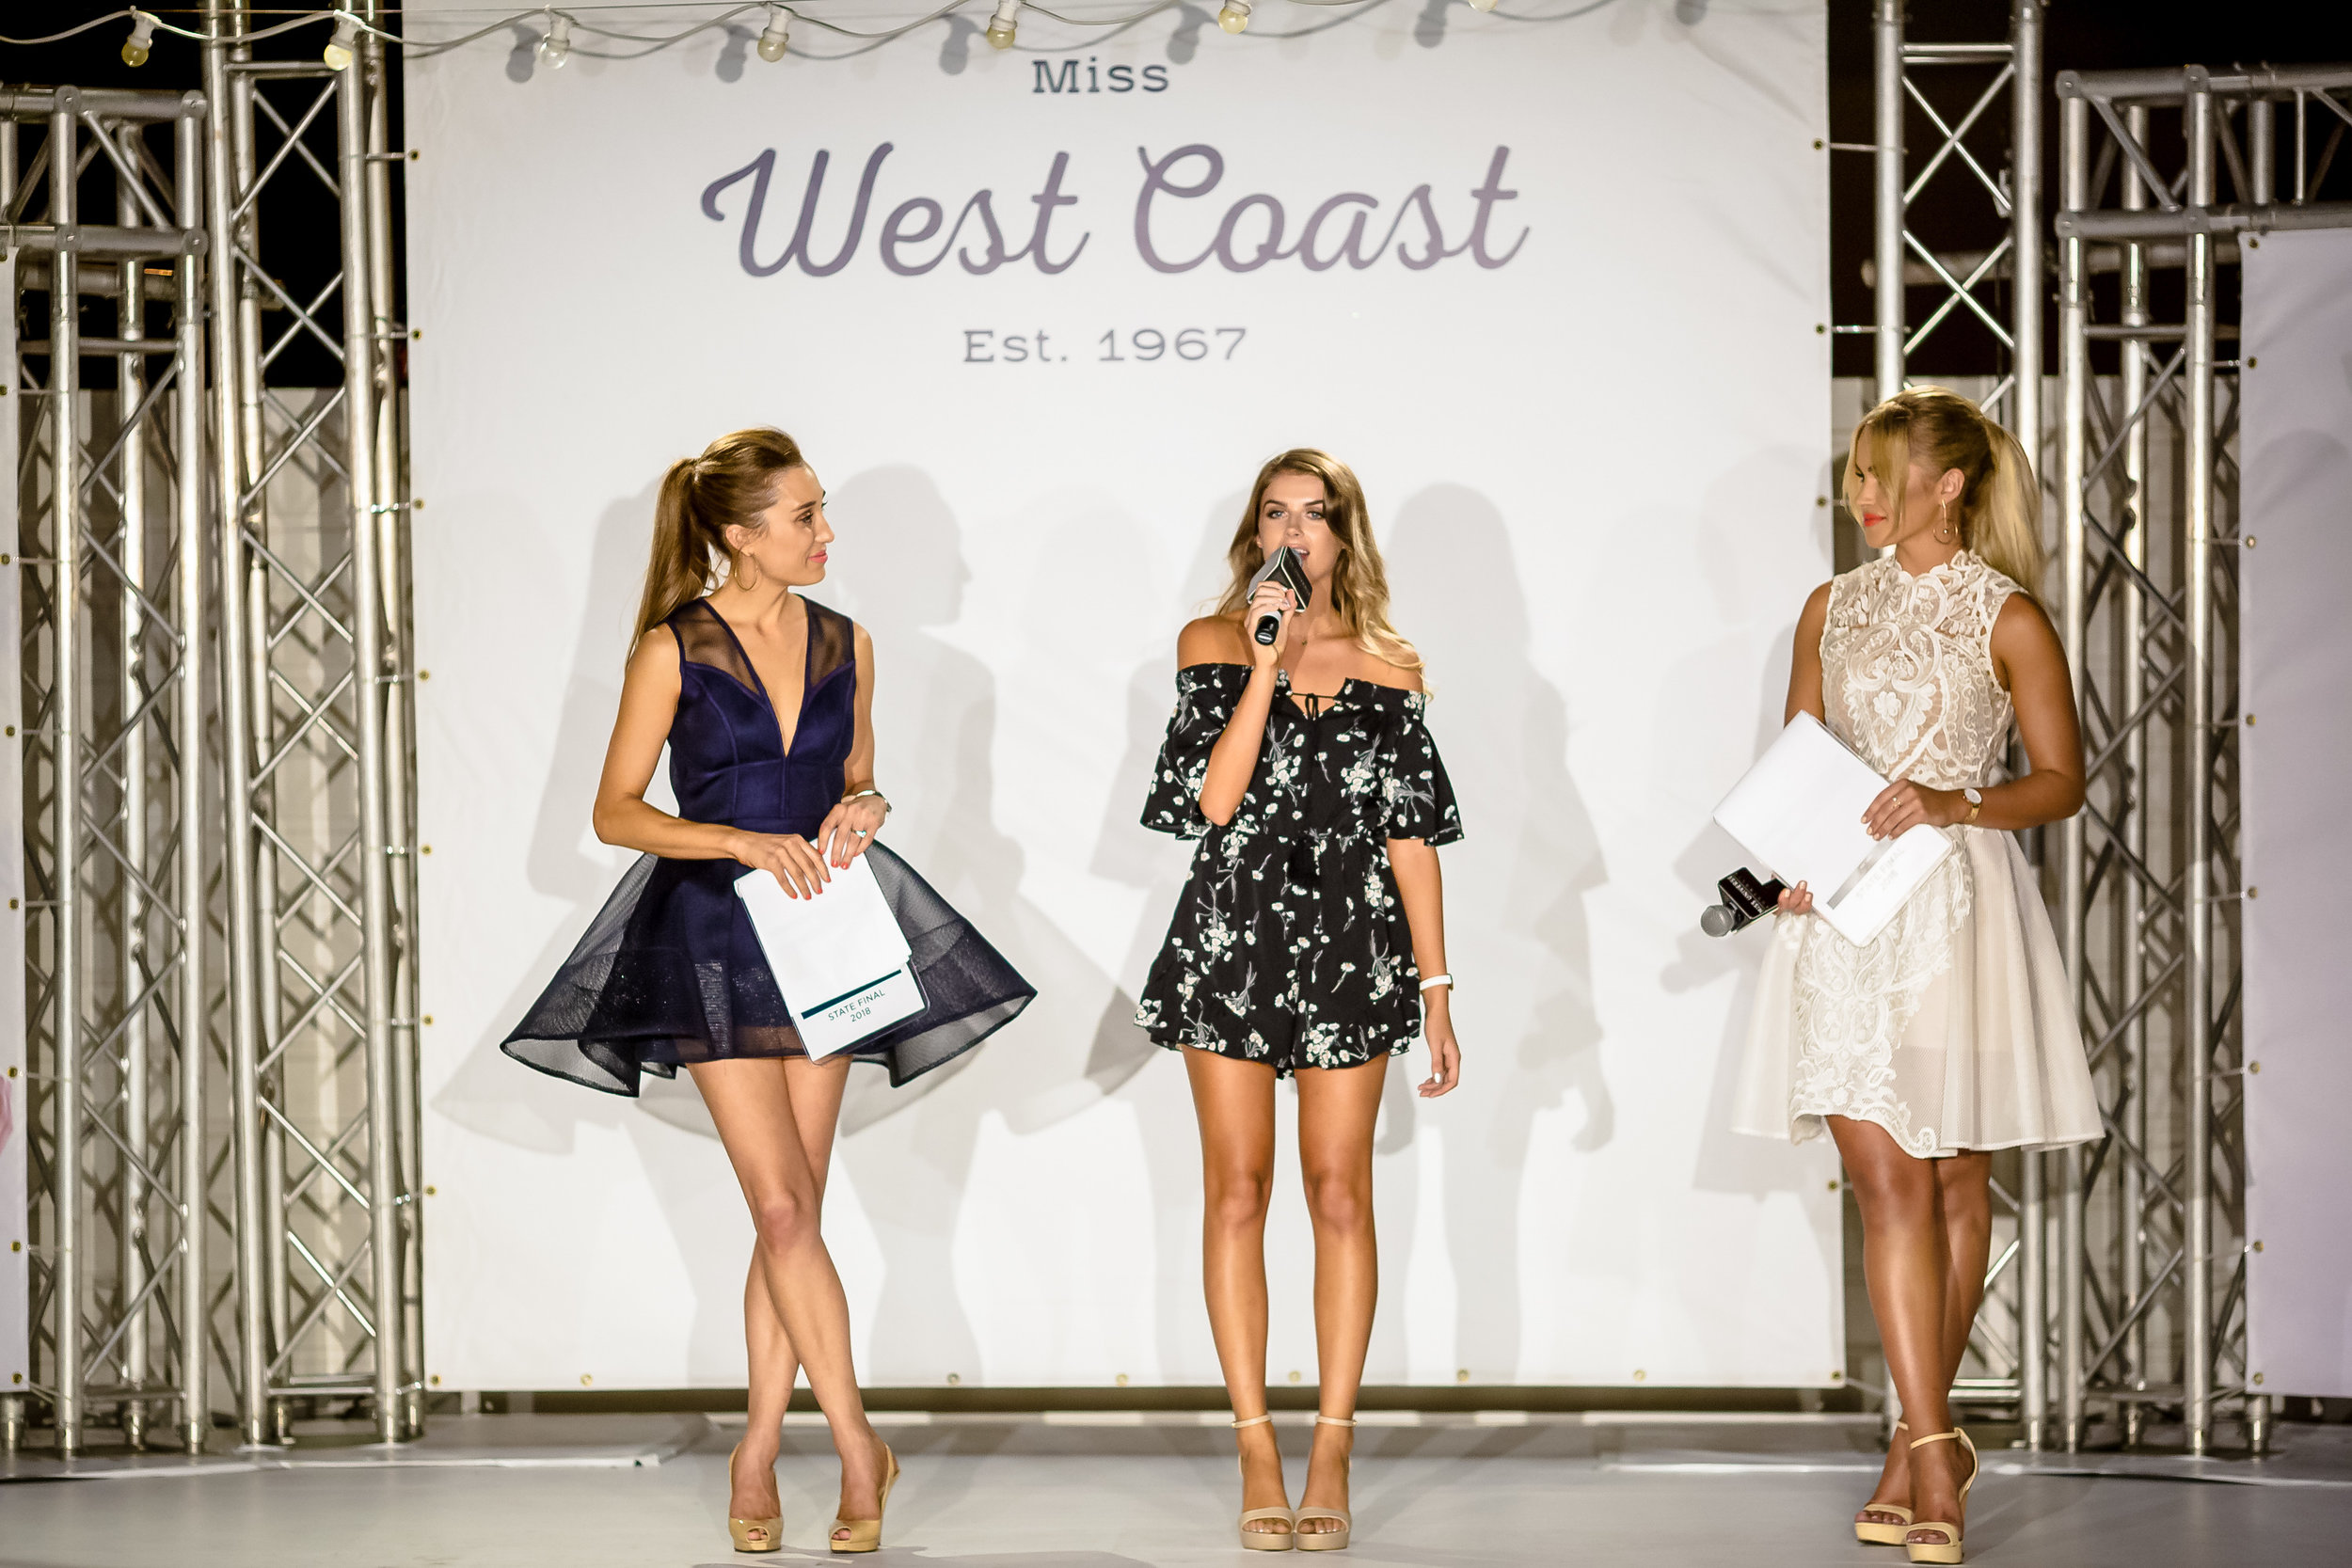 2018.04.06 MISS WEST COAST FINAL FULL ALBUM-76.jpg